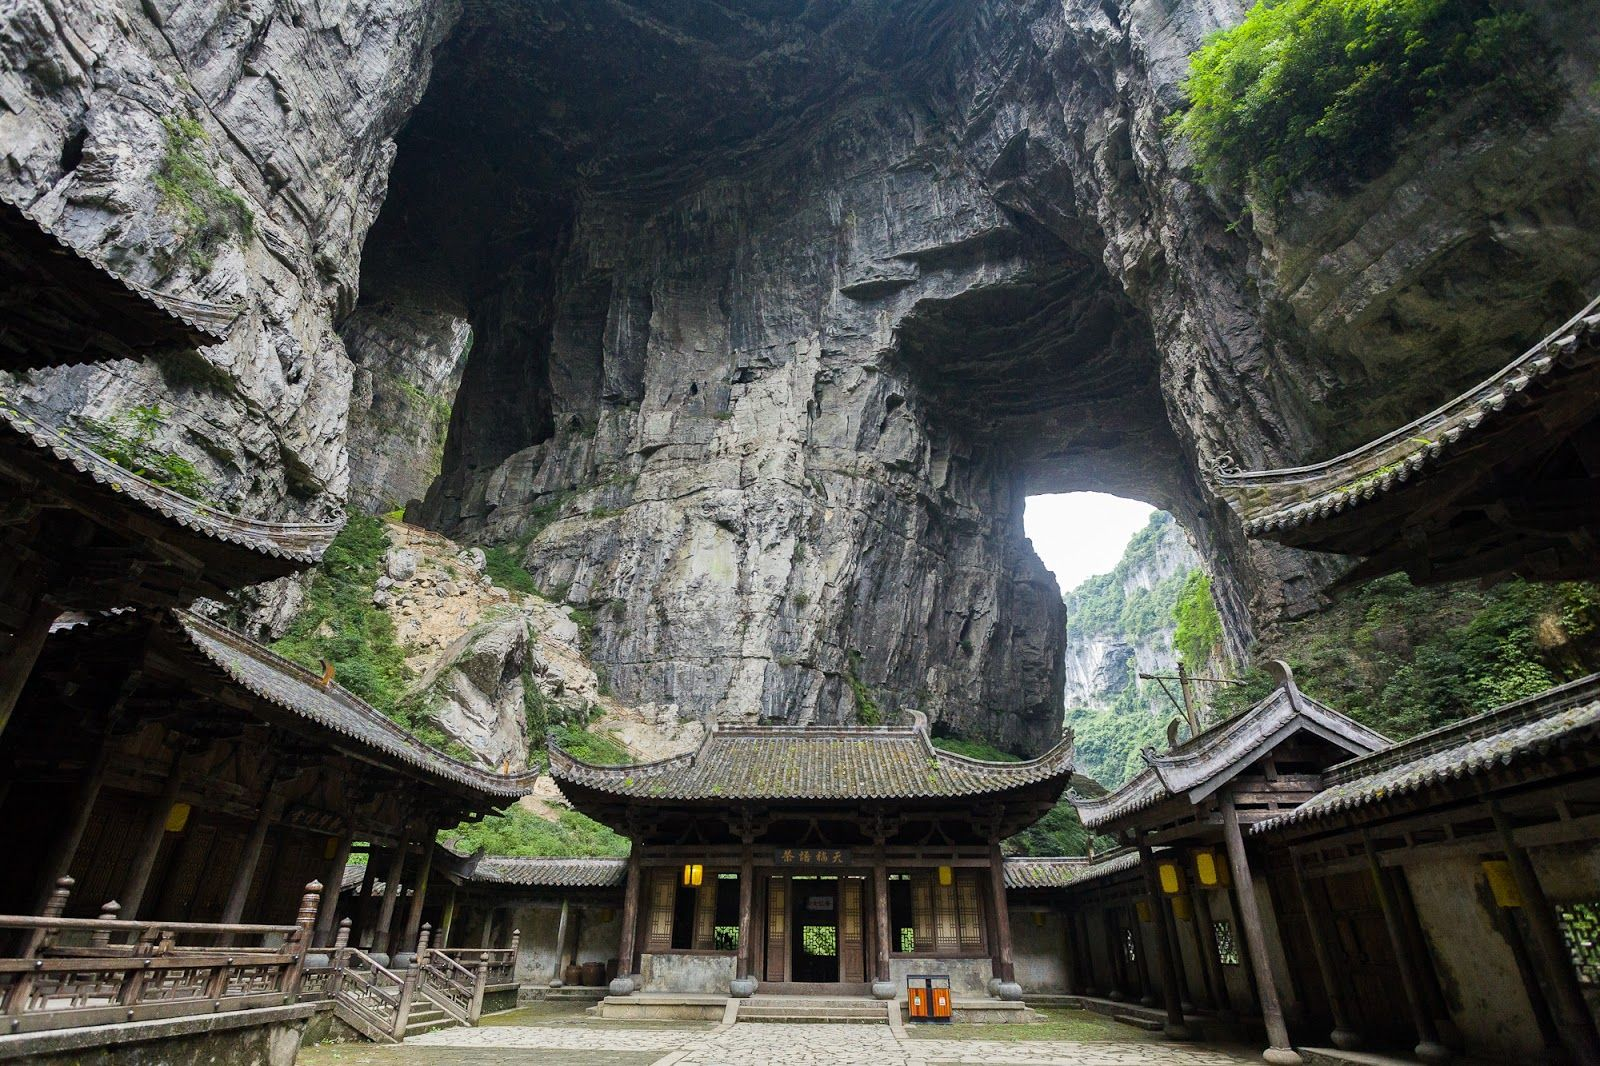 The Three Natural Bridges are a series of natural limestone bridges located in Xiannüshan Town, Wulong County, Chongqing, China.